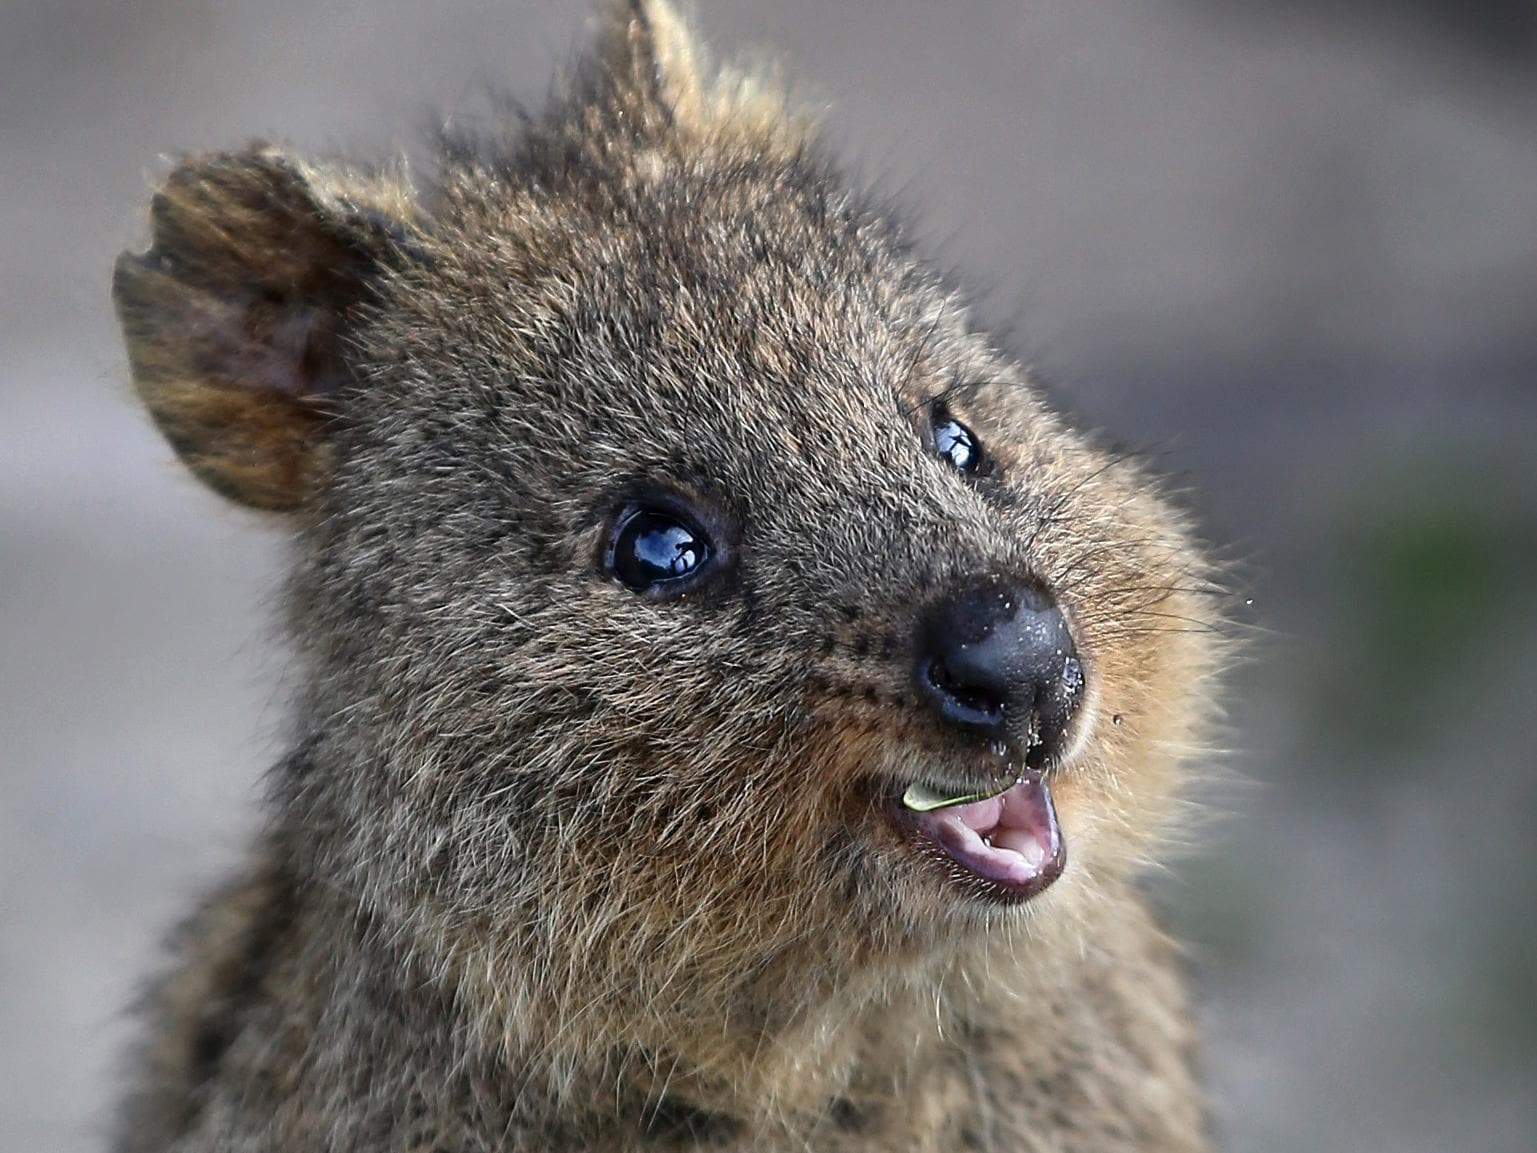 Instagram compares quokka selfies to 'animal cruelty'